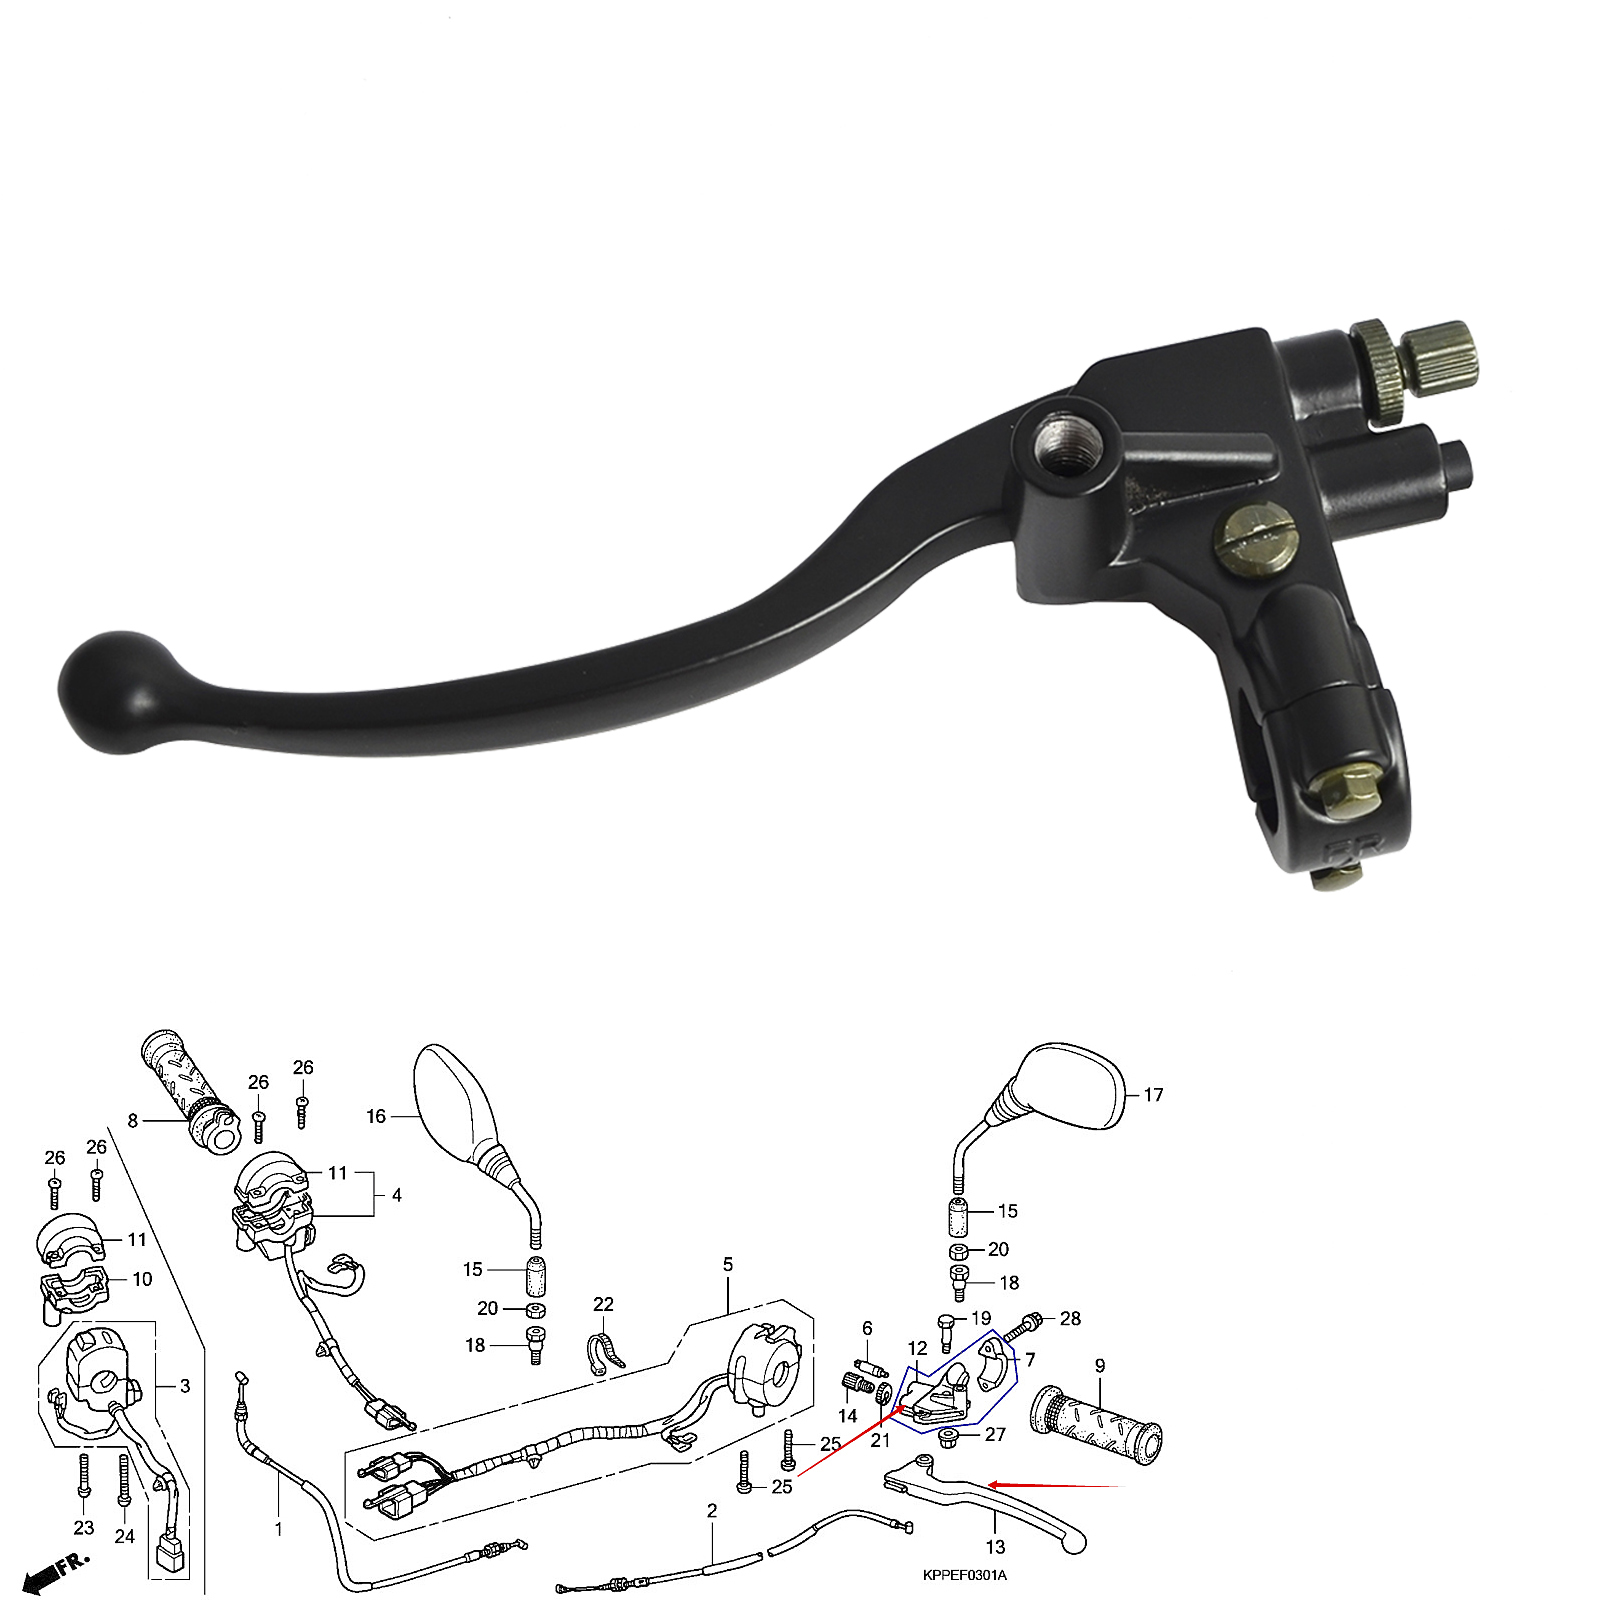 Clutch Lever And Bracket Suitable For Lexmoto Xtr S 125 Ks125-23 Honda Cbr125 R4 R5 Rs5 Rs6 Rw 5/6//7/8/9 A/b/c To Assure Years Of Trouble-Free Service